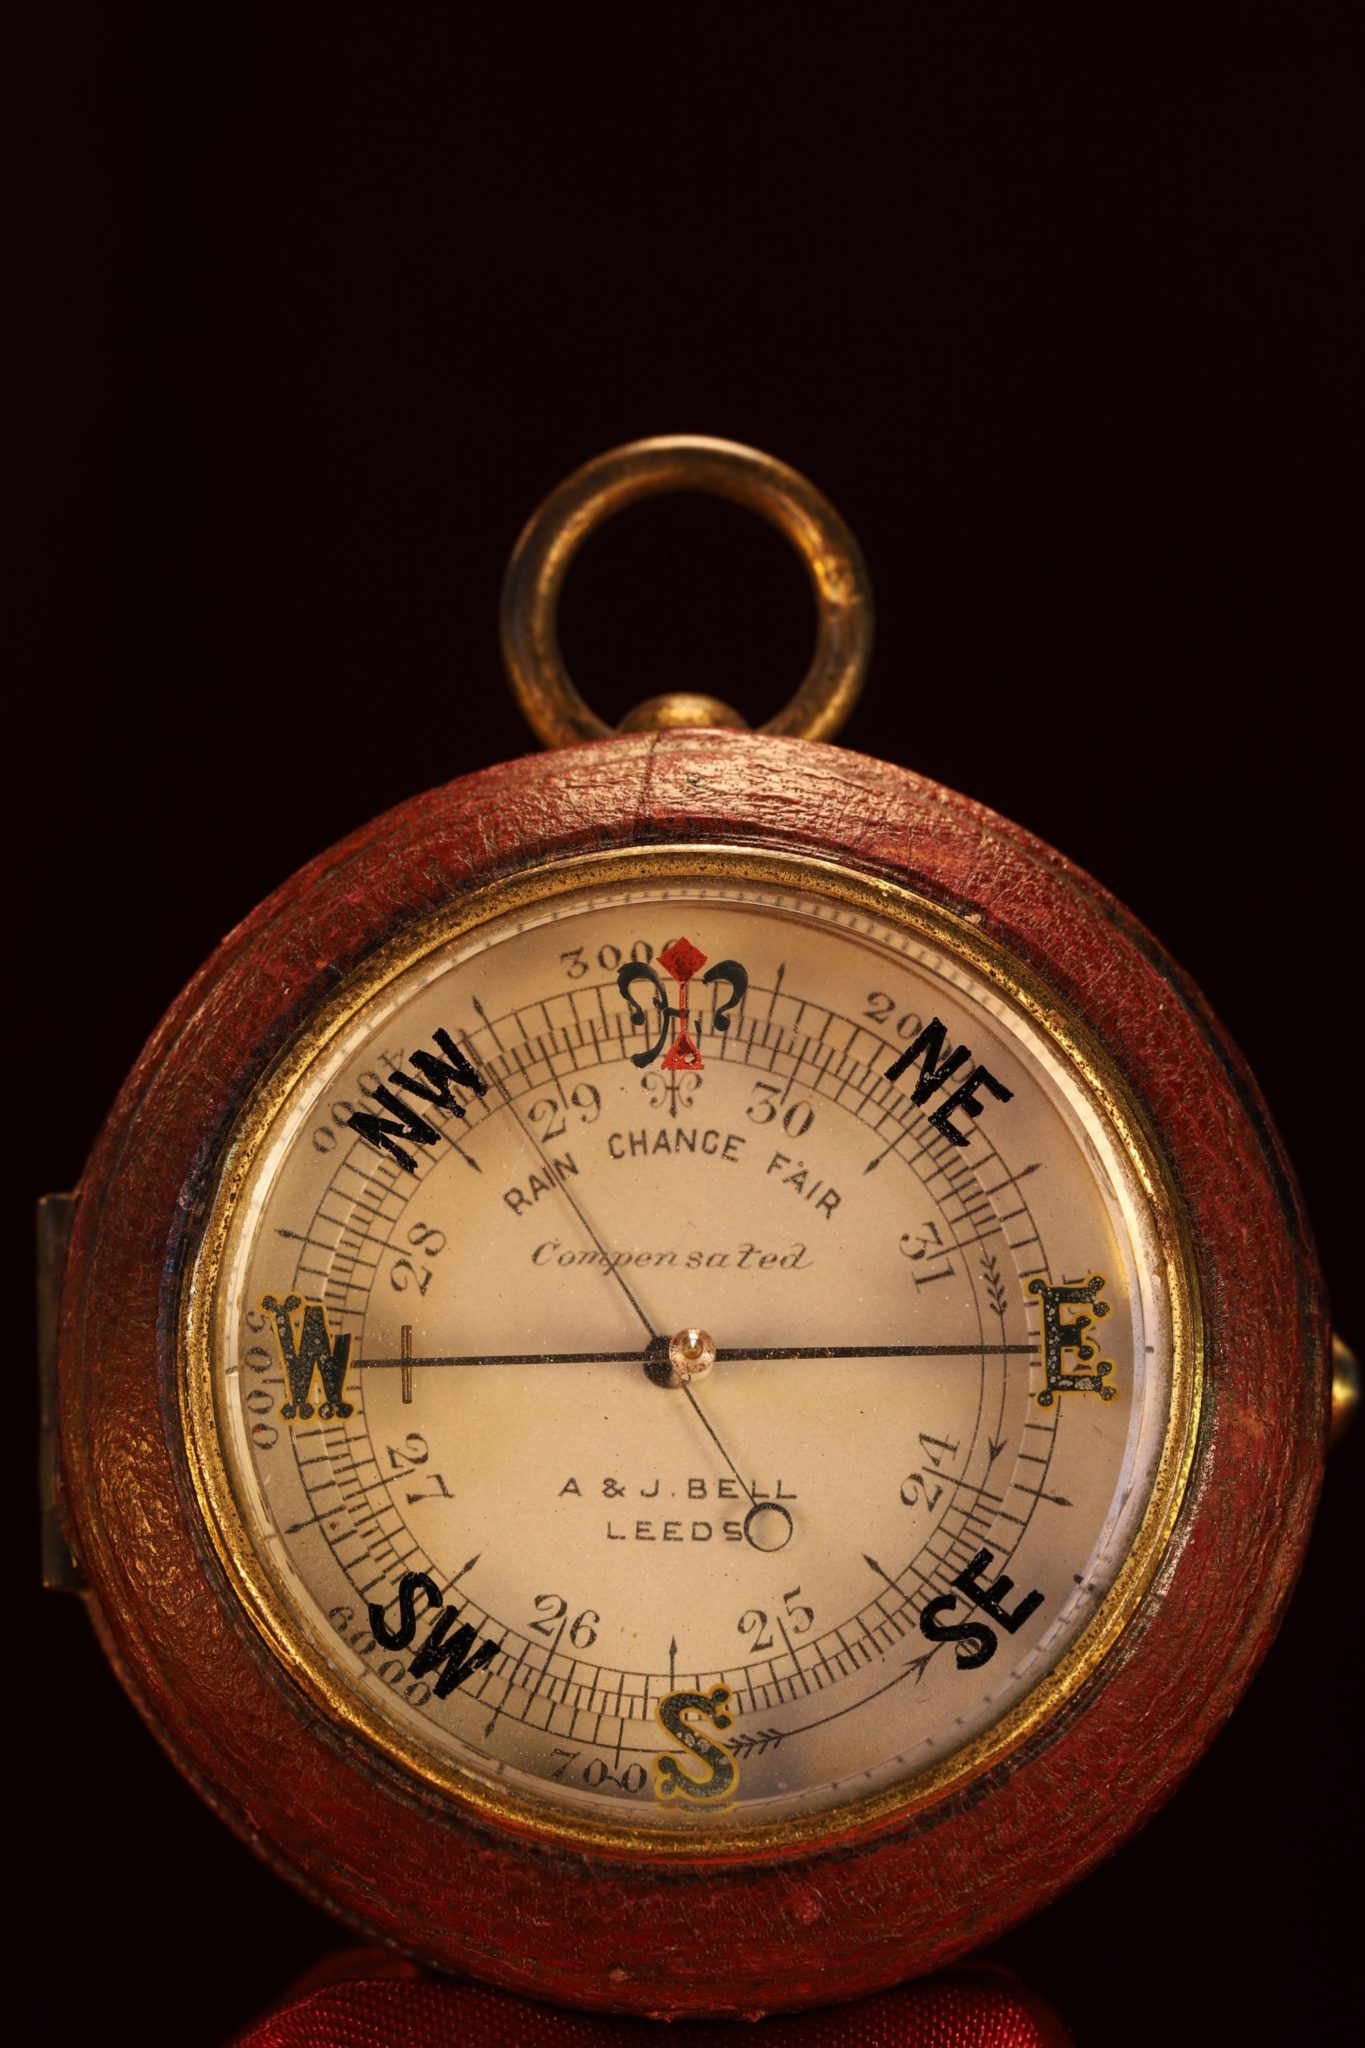 Image of Pocket Barometer and Compass Compendium by Negretti & Zambra for A&J Bell c1914